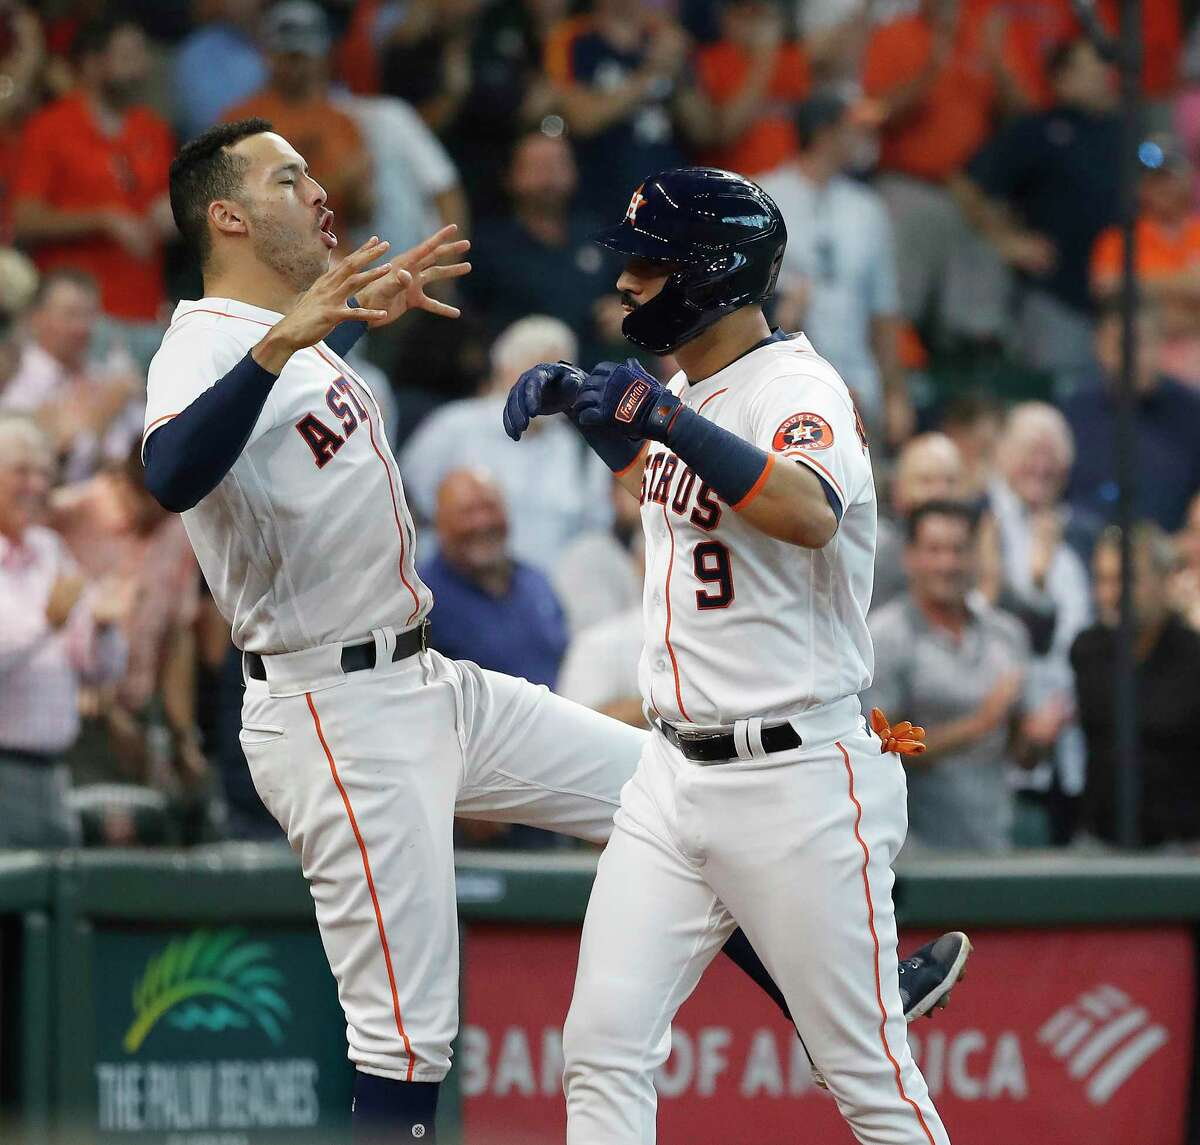 Houston Astros Marwin Gonzalez (9) celebrates with Carlos Correa after hitting a two-run home run off Seattle Mariners starting pitcher Tyler Anderson (31) during the second inning of an MLB baseball game at Minute Maid Park, Wednesday, September 8, 2021, in Houston.